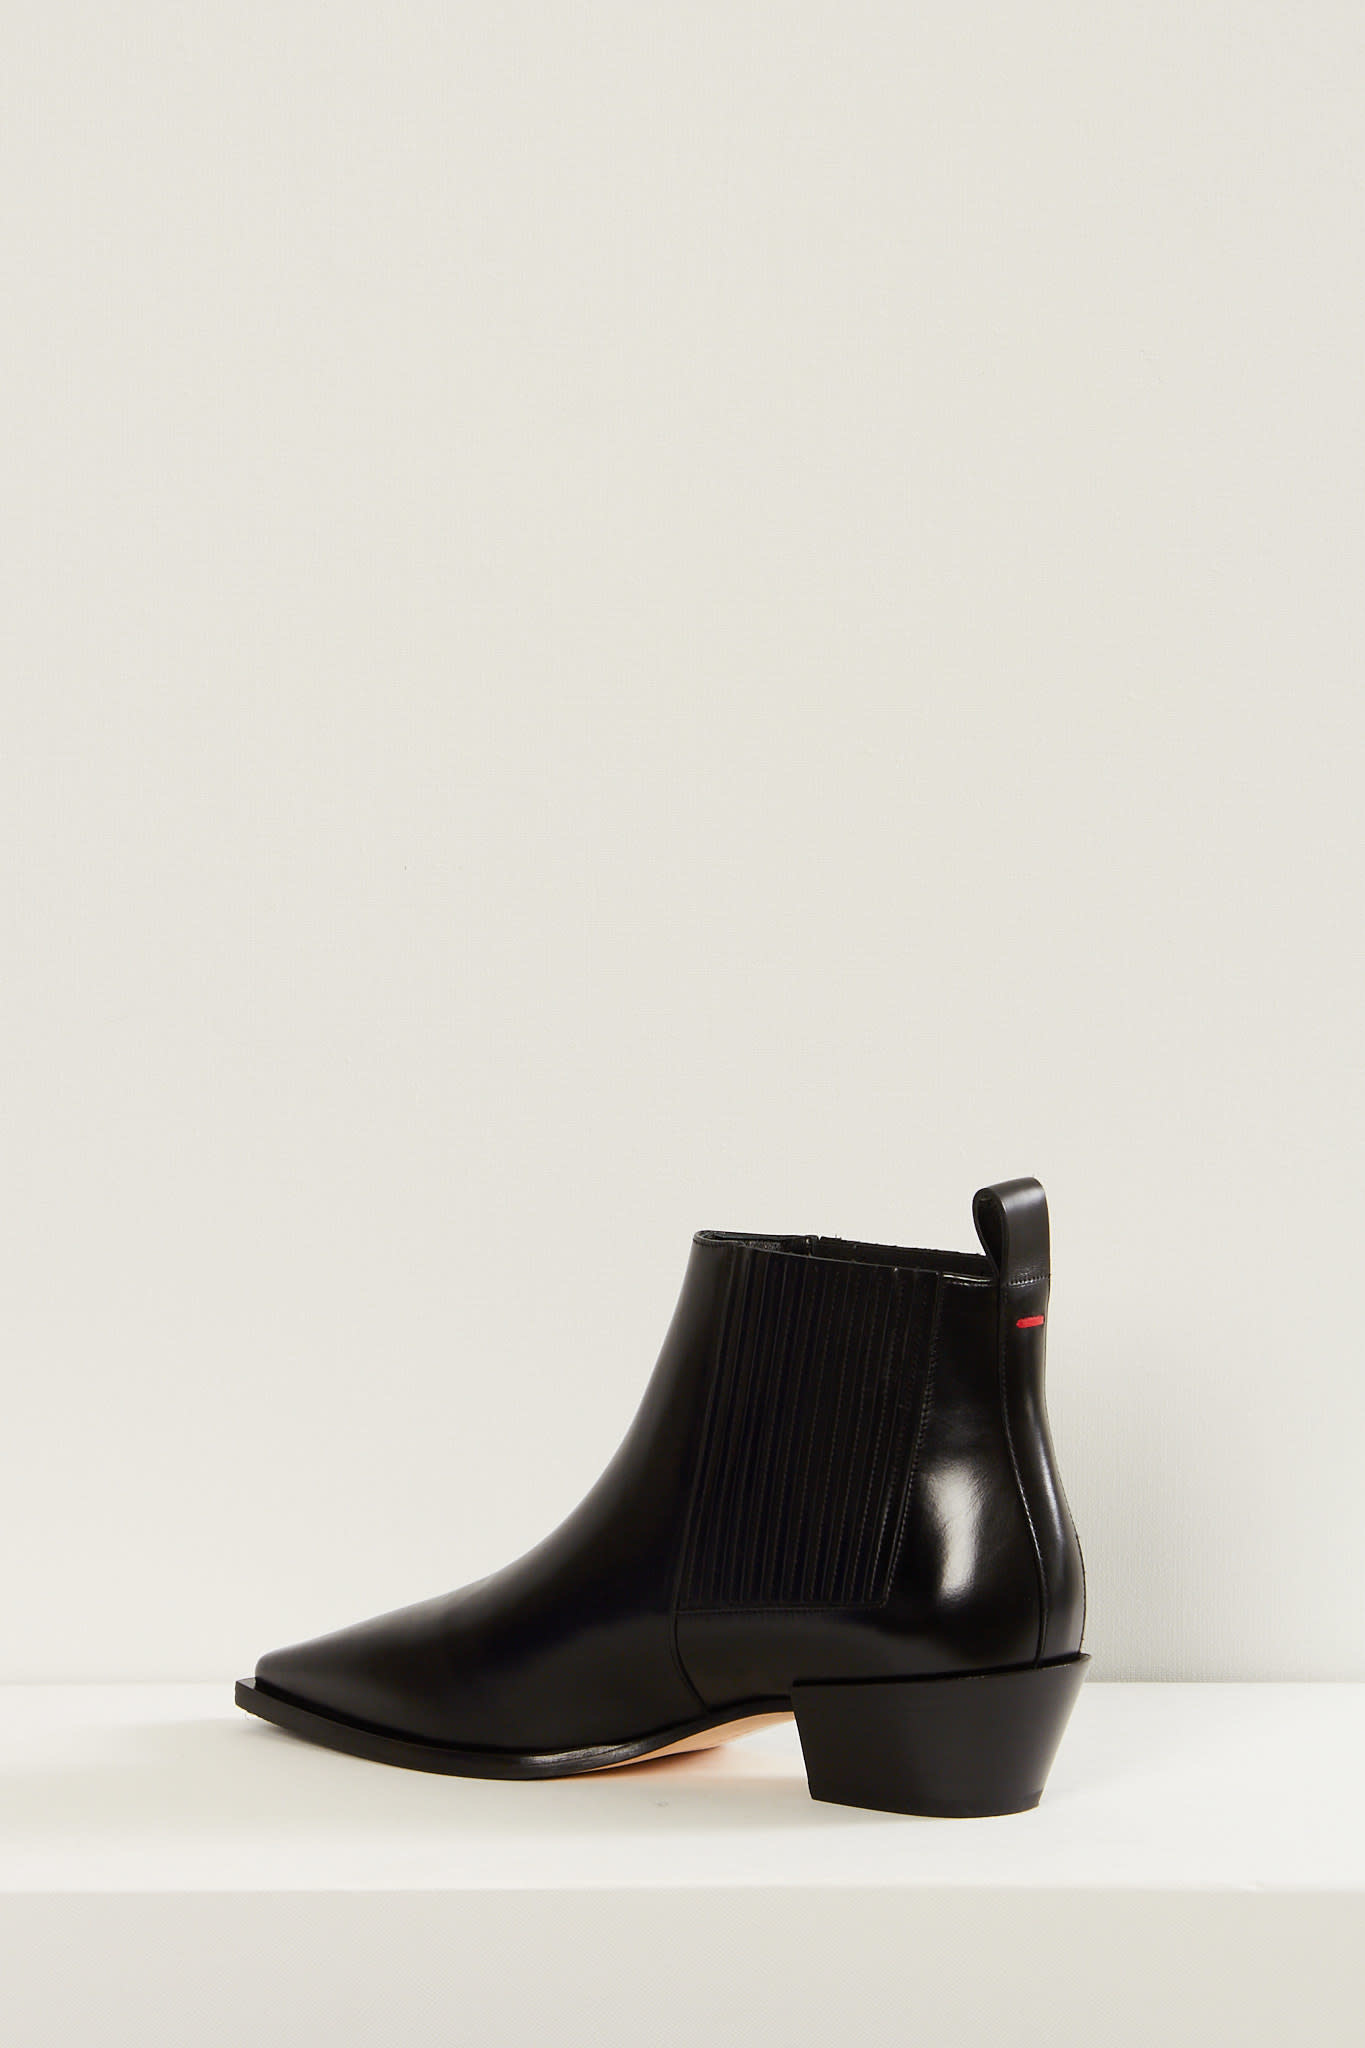 Aeyde - Bea calf leather boots